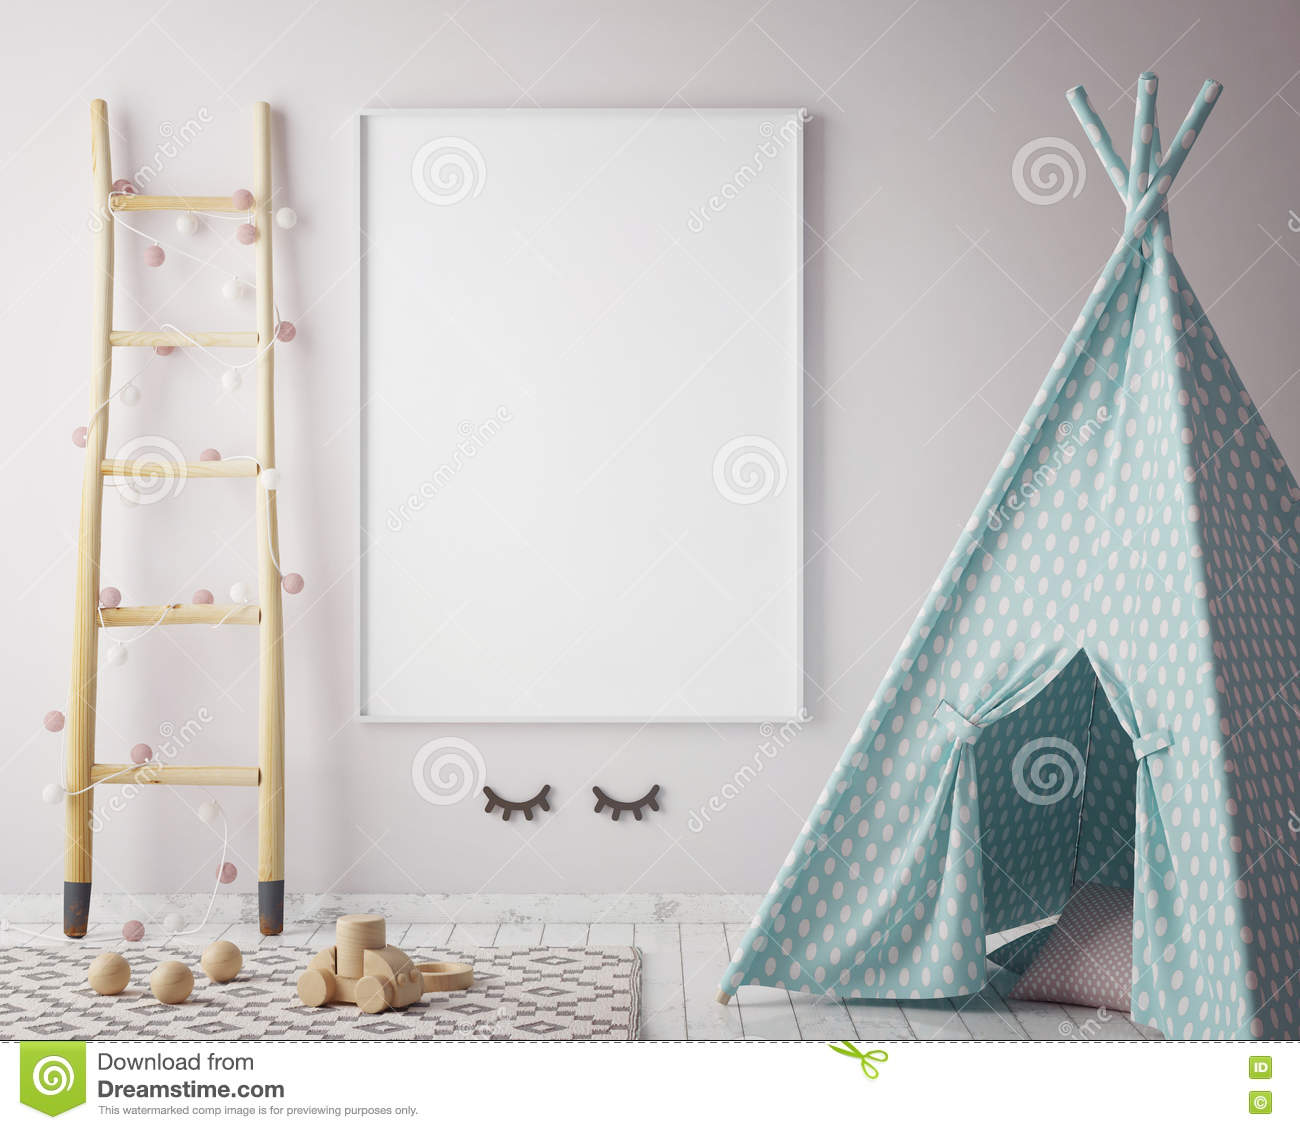 Mock up poster frame in hipster room, scandinavian style interior background, 3D render